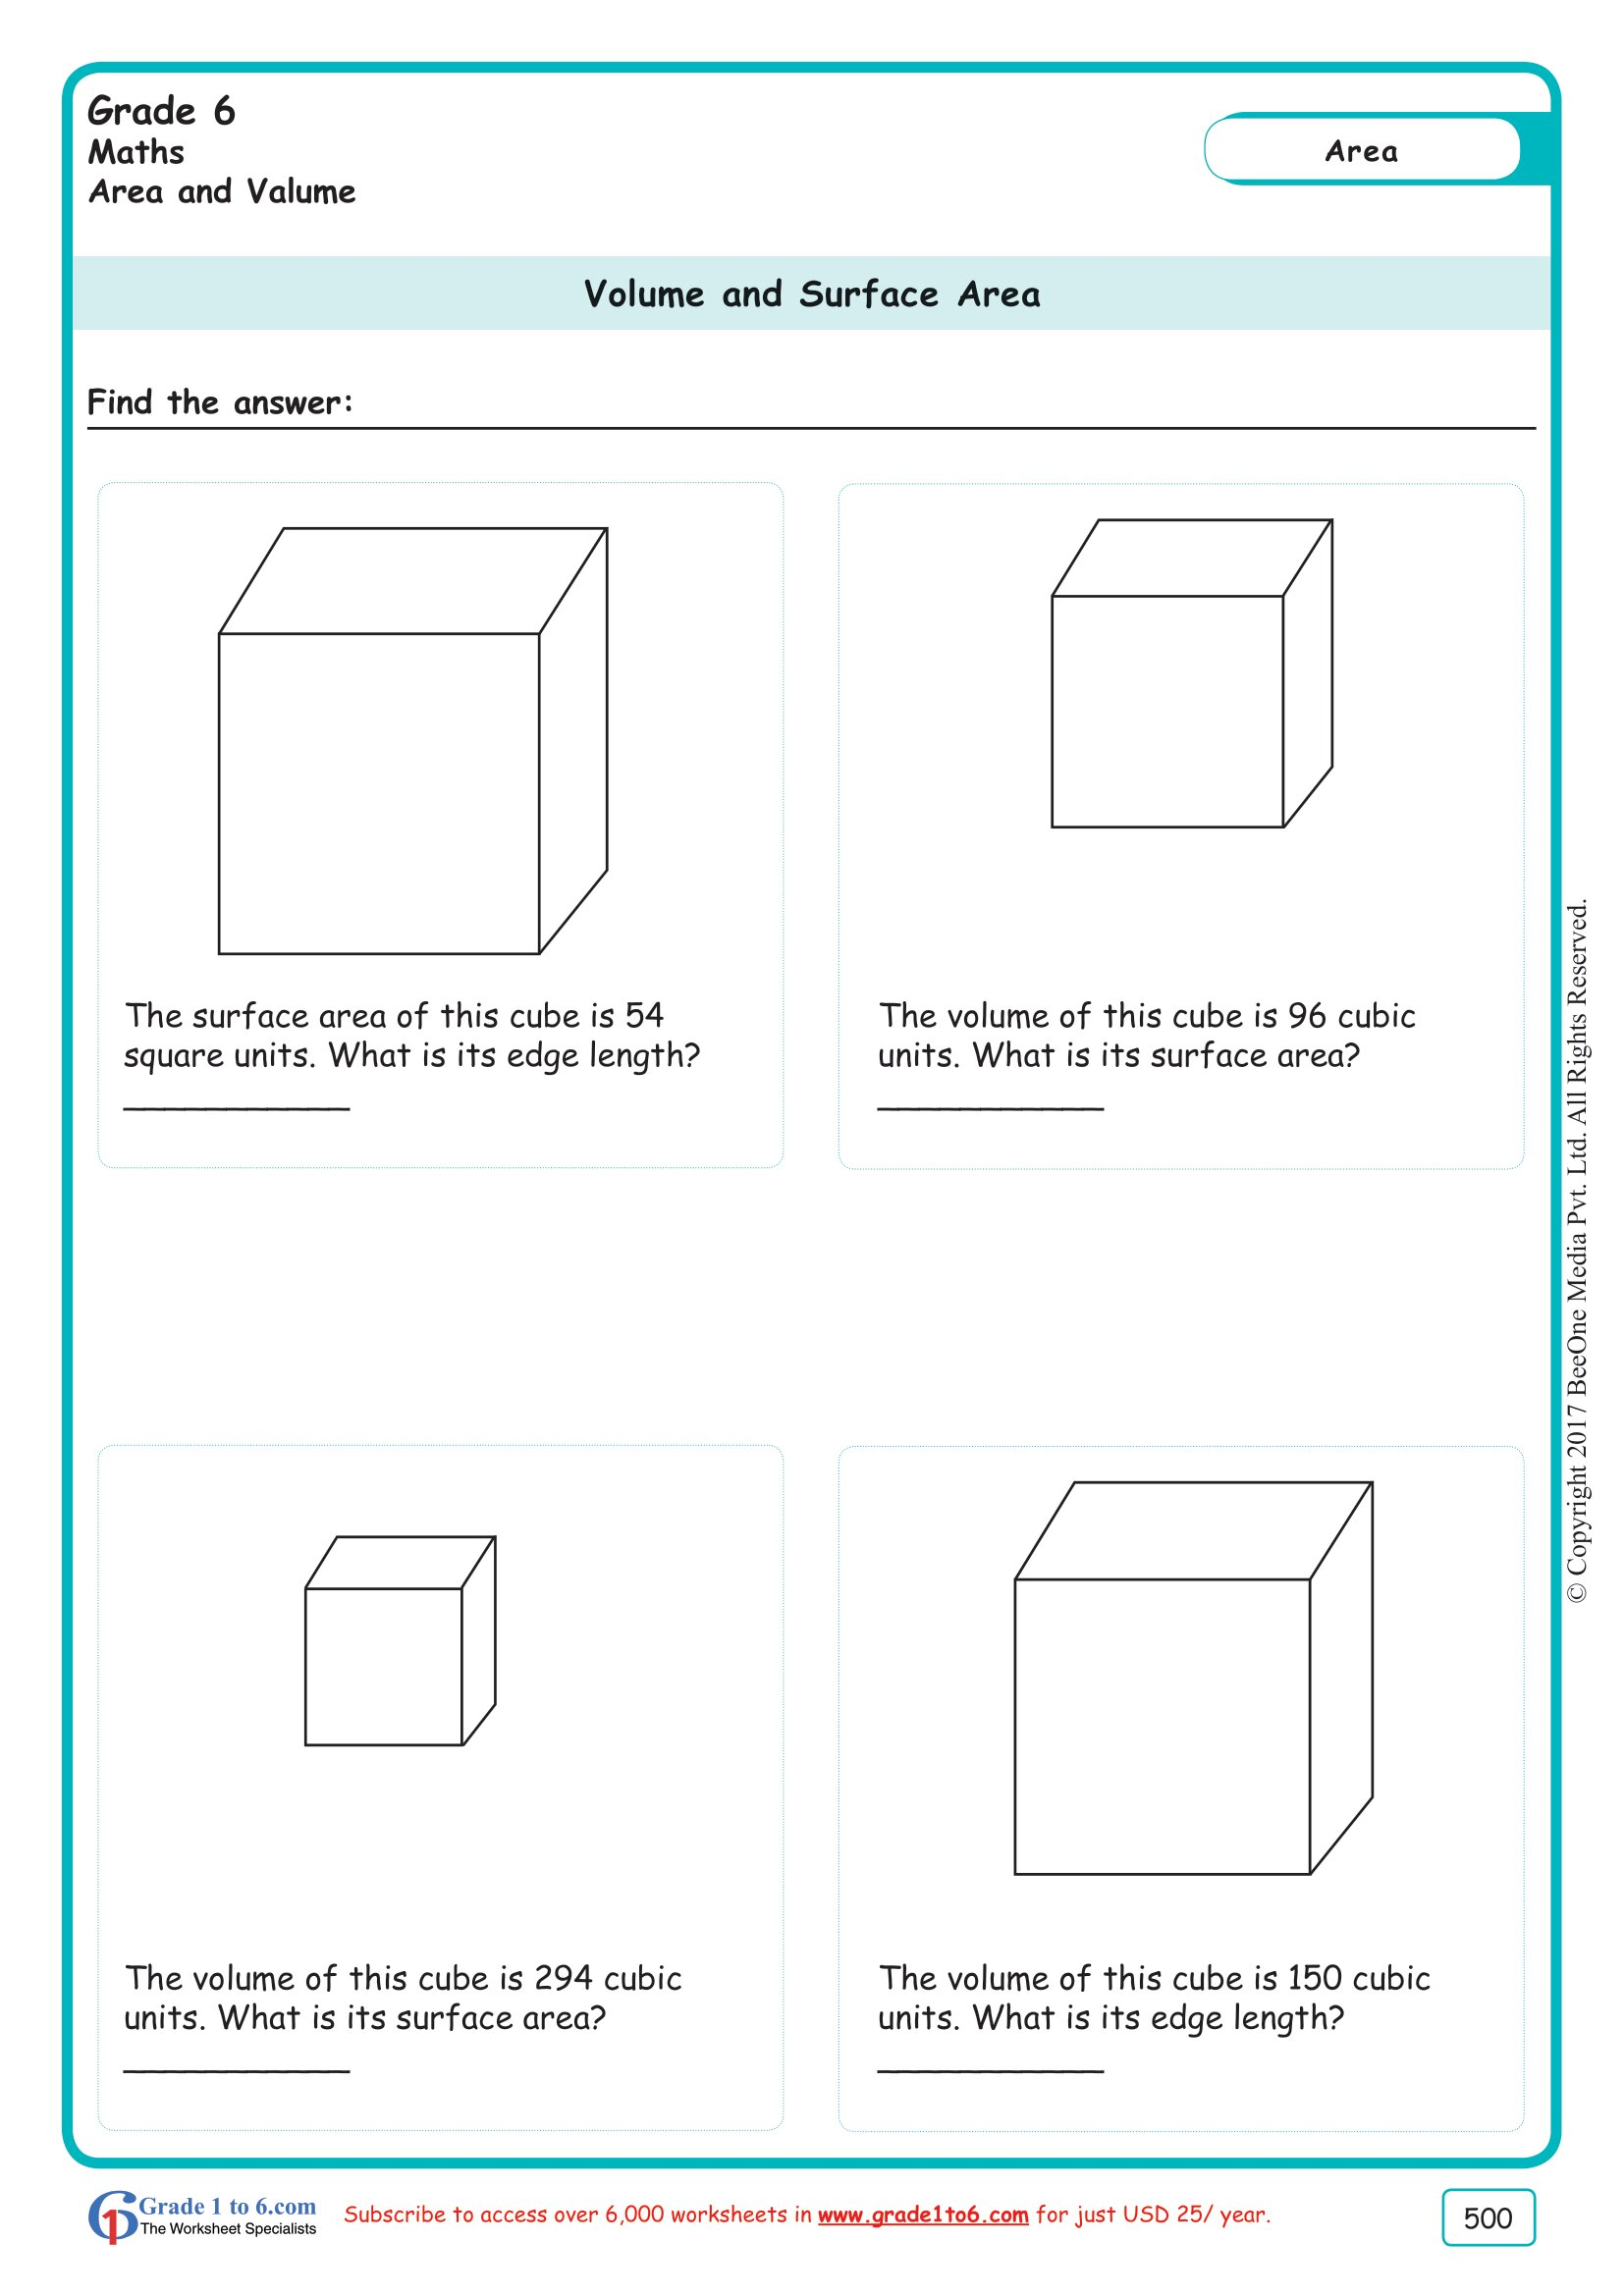 Volume Amp Surface Area Of A Cube Worksheet Ade1to6